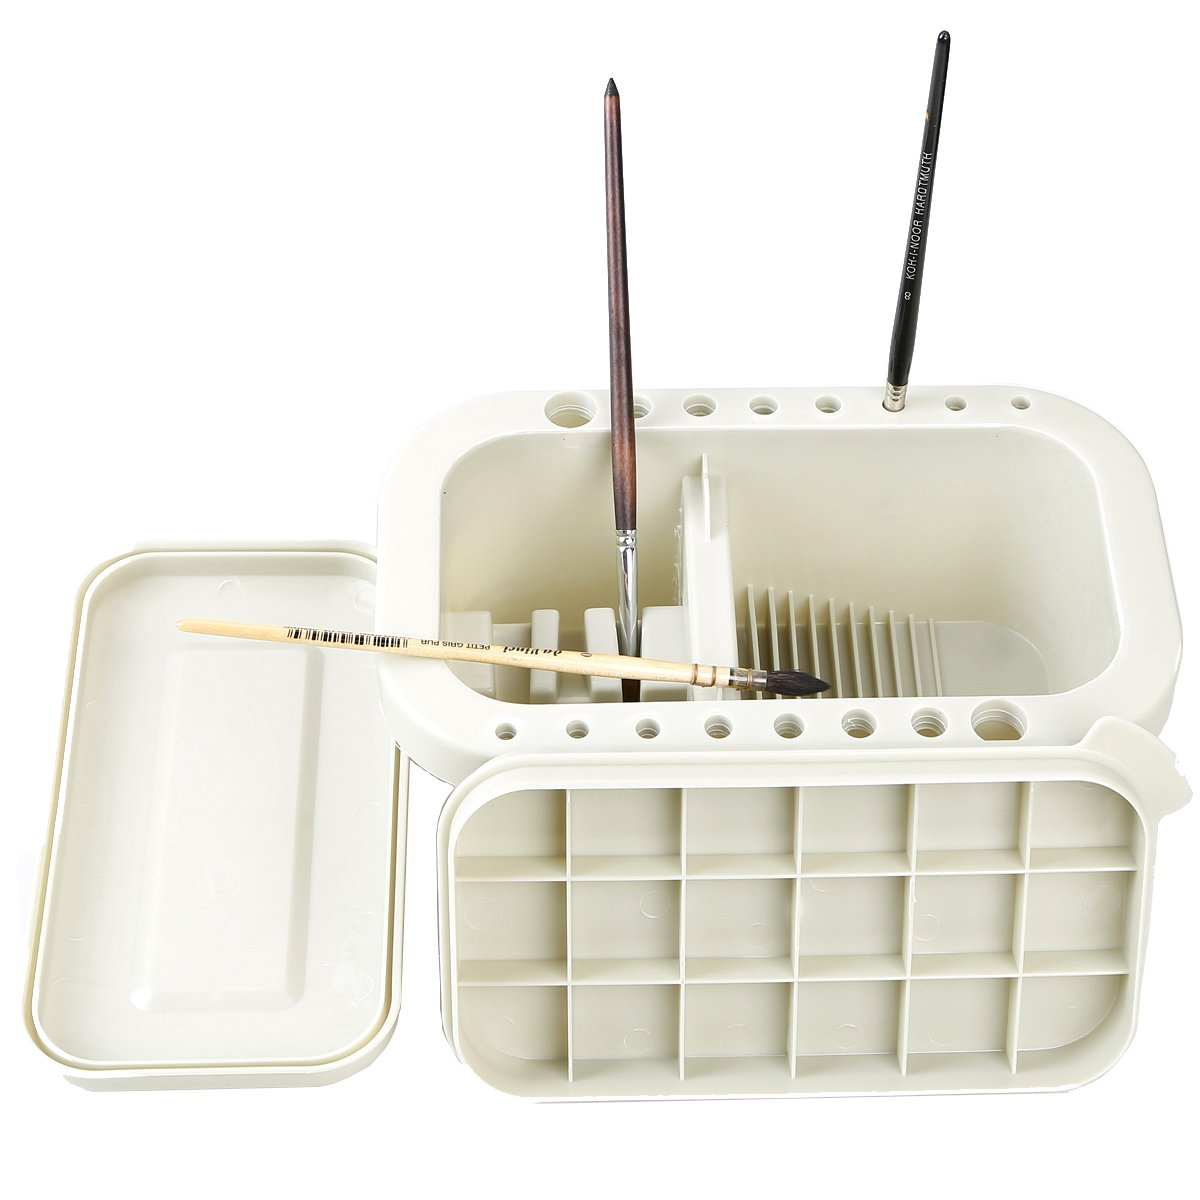 MyLifeUNIT Multifunction Paint Brush Basin with Brush Holder and Palette 4336938469